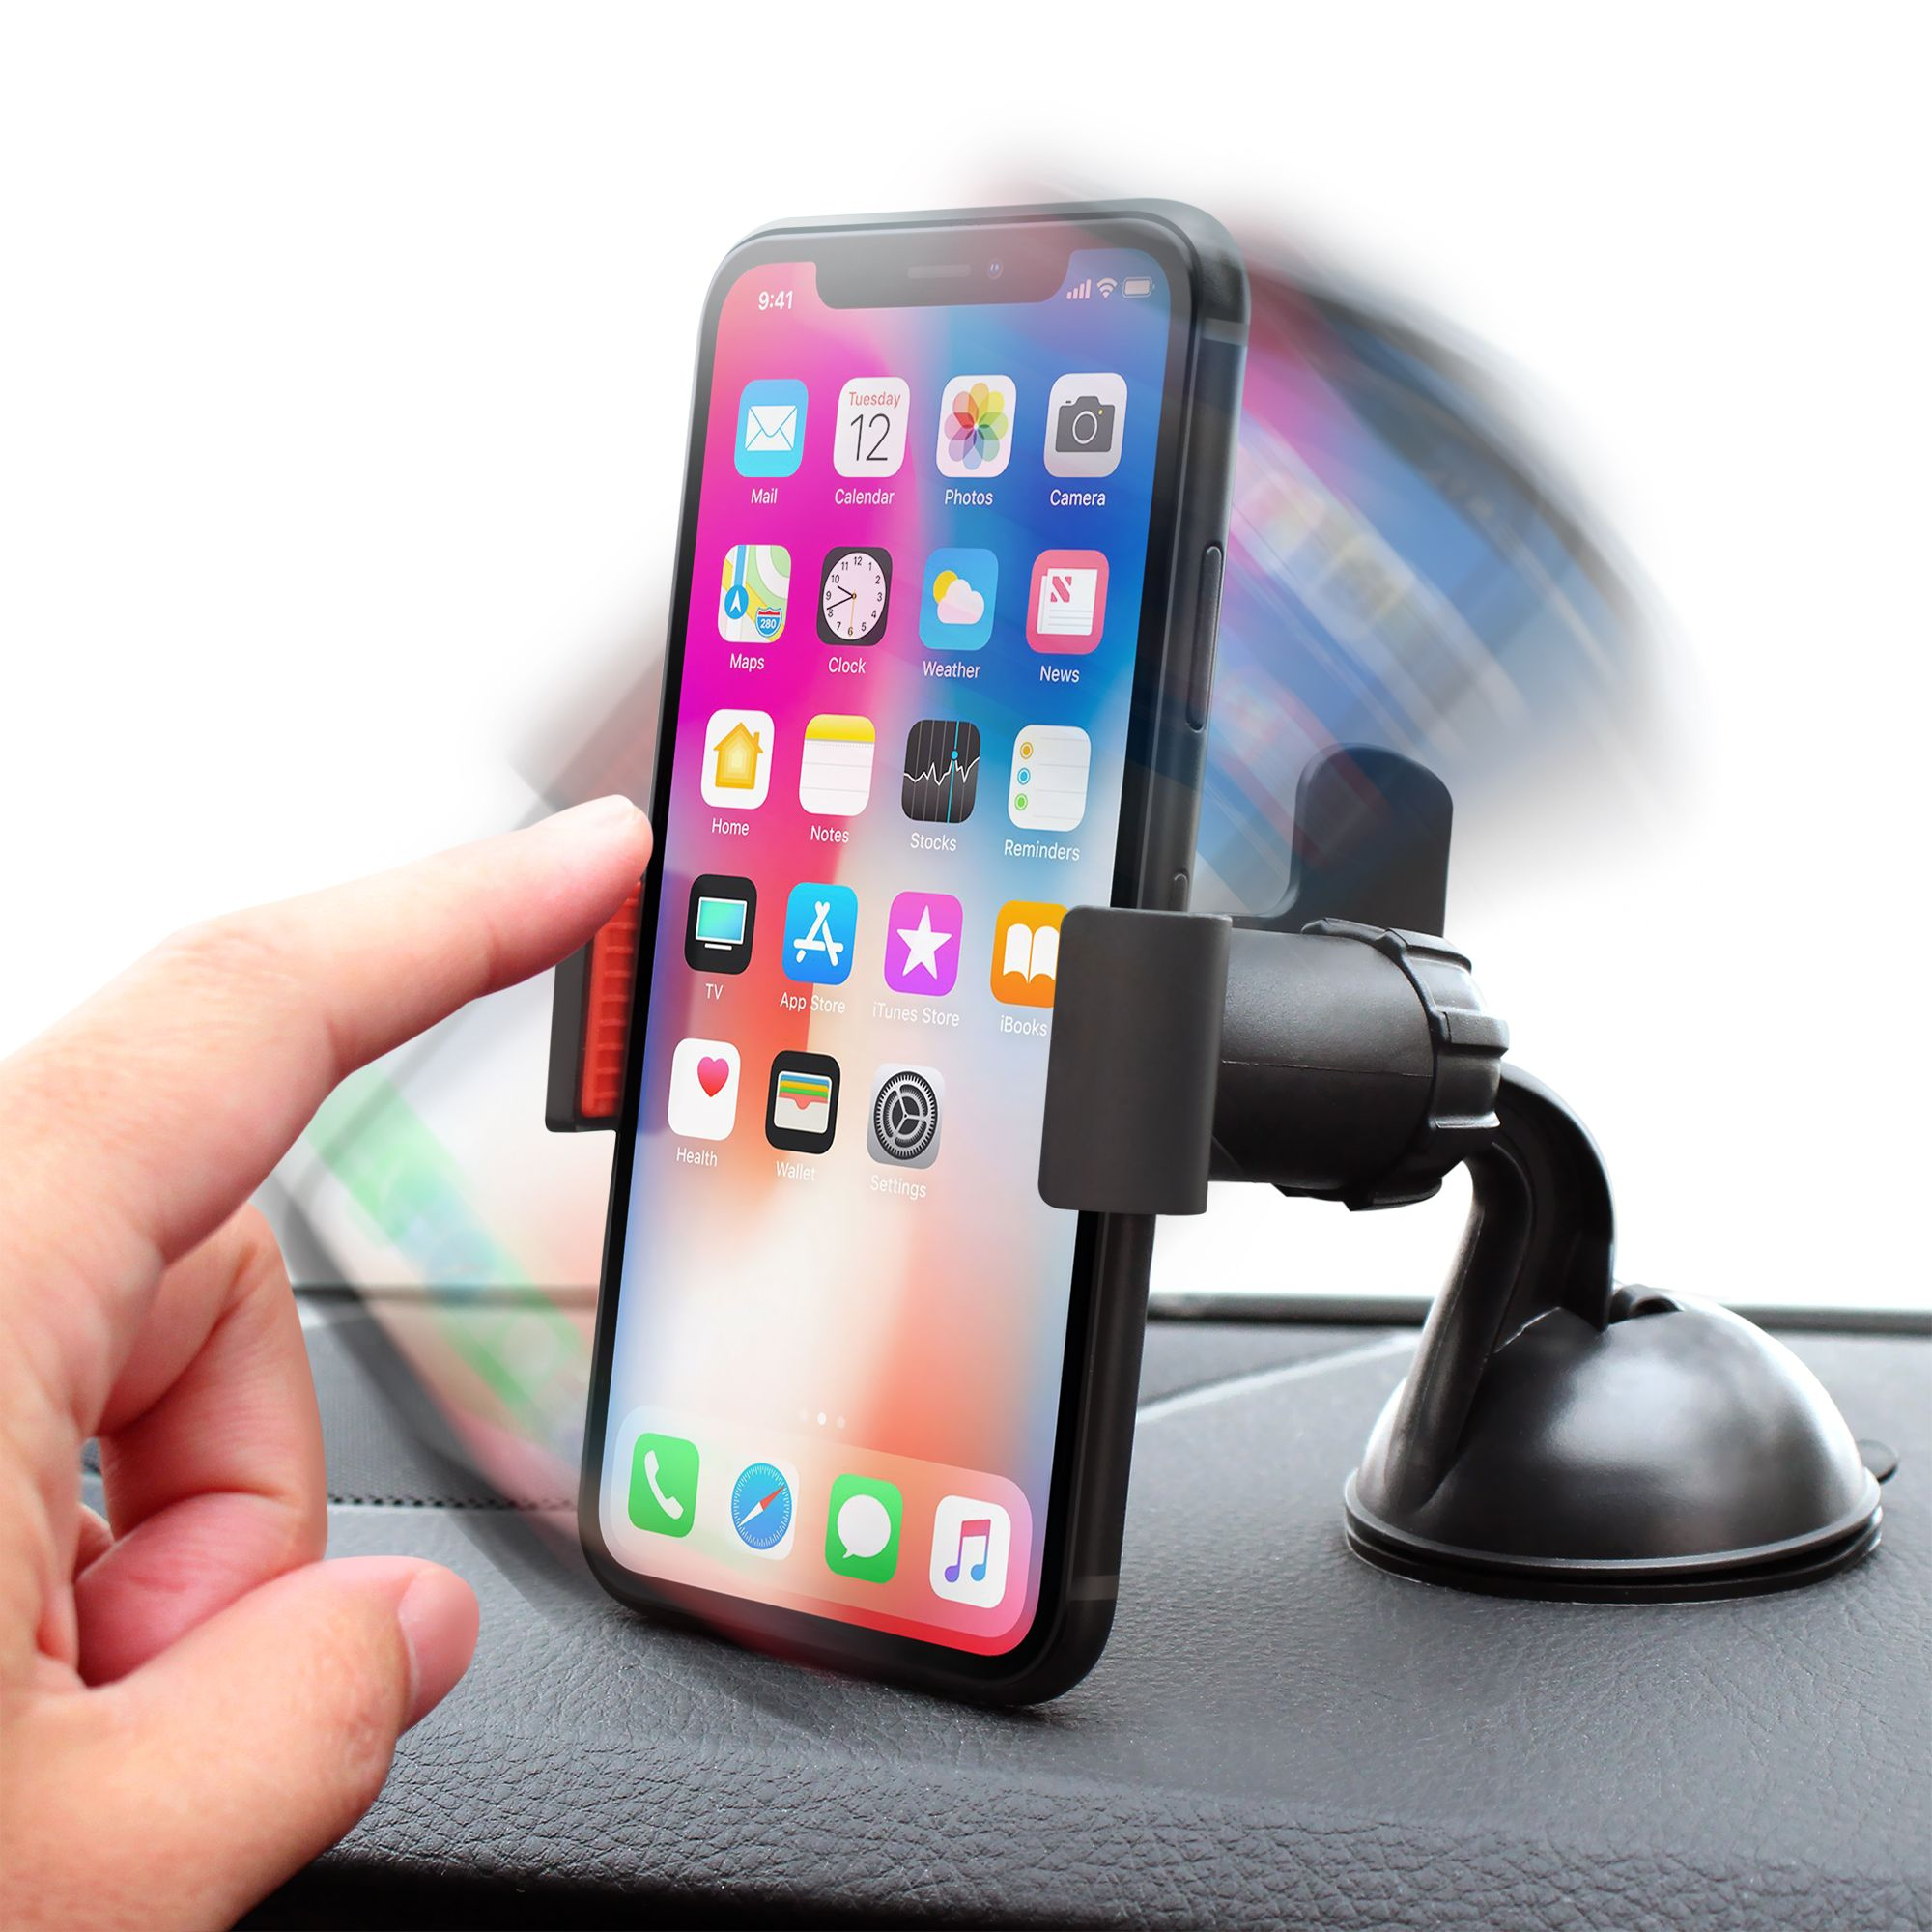 Insten Car Windshield Cell Phone Holder Car Mount Bracket for iPhone XS Max XR XS X 7 8 Plus SE 6s 6 iPod Touch 6th Samsung Galaxy S9 S9+ S10 S10e S8 S7 S6 Plus Edge Note 8 J7 J3 ZTE LG G6 V30 Stylo 4